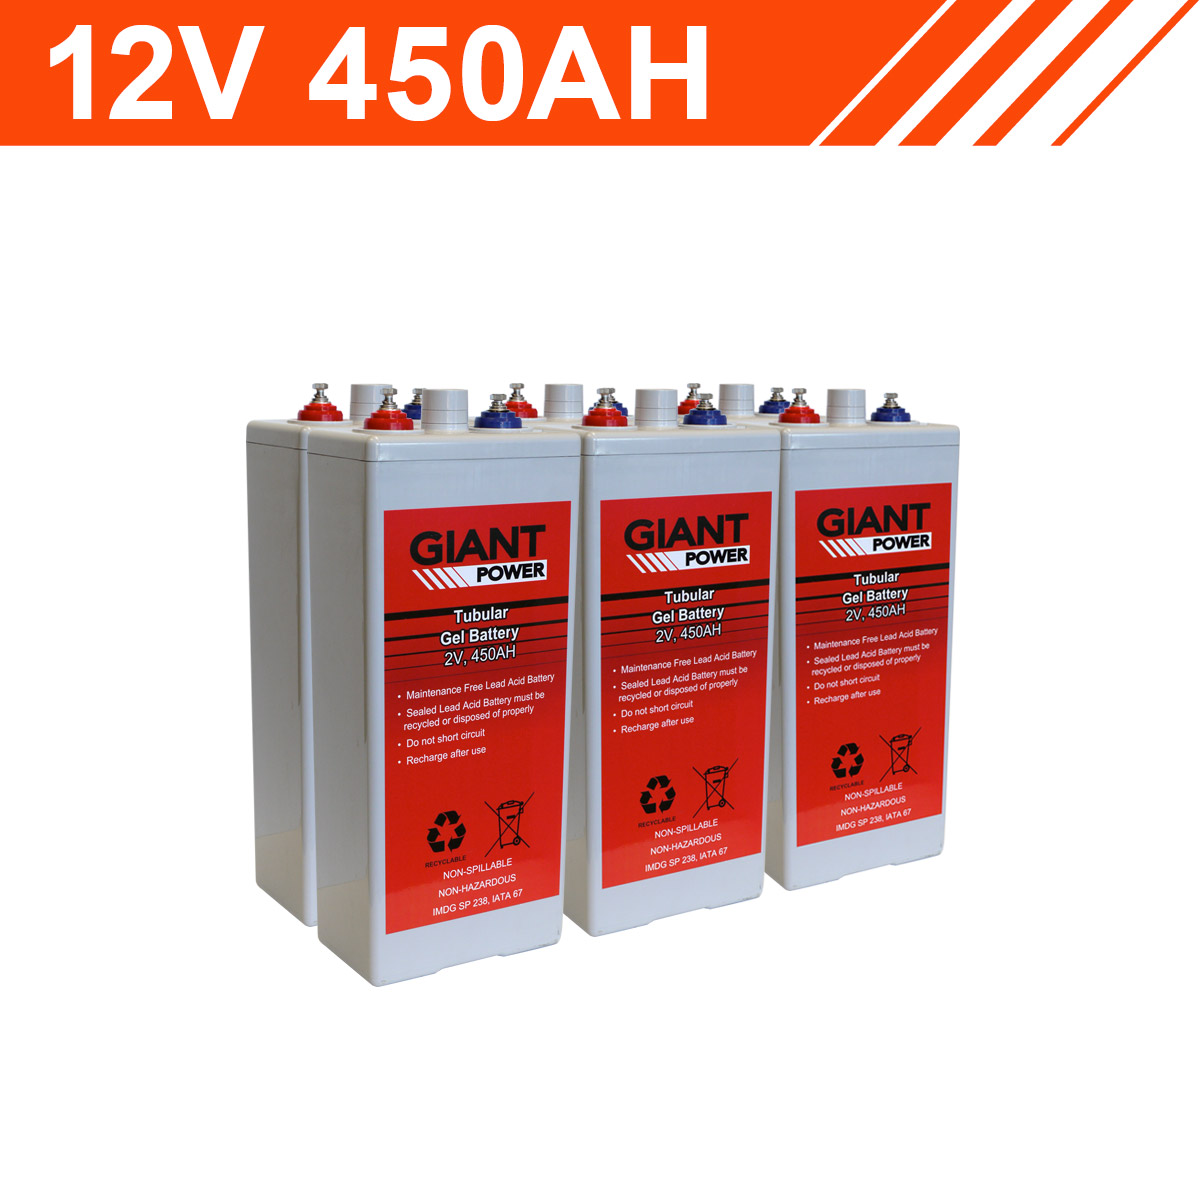 12v 450ah Tubular Gel Battery Bank